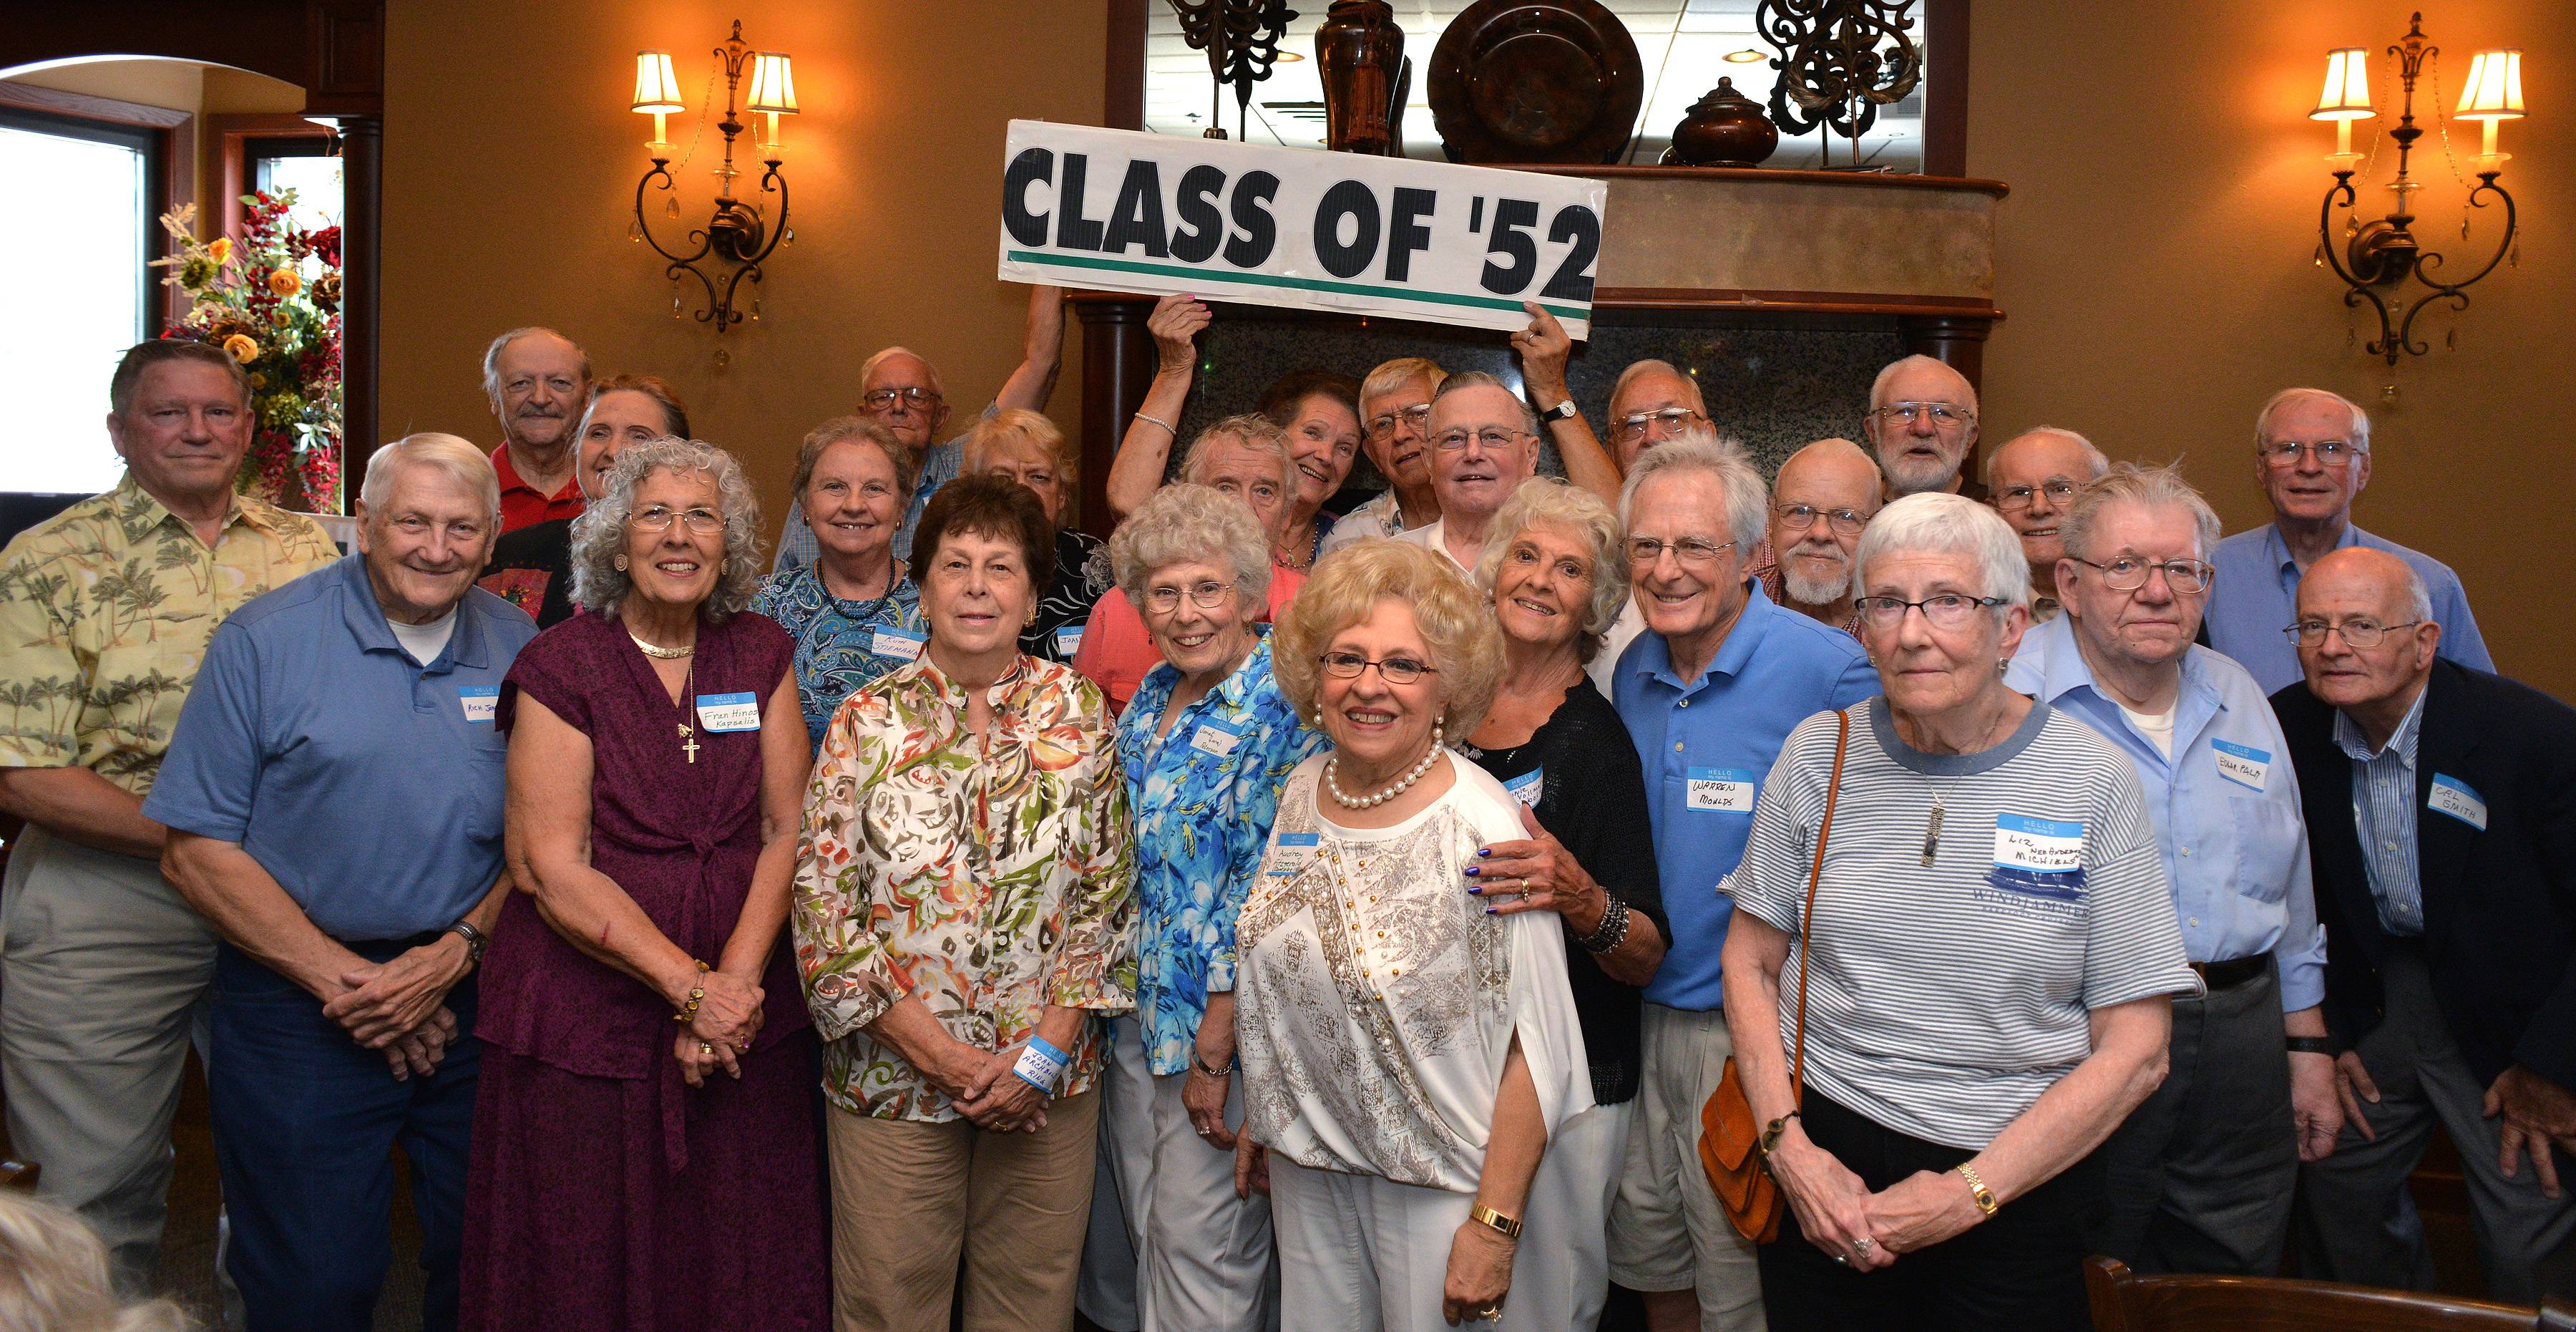 Roughly 25 graduates of Glenbard West High School's class of 1952 got together Friday at Cooper's Corner in Winfield to reminisce and celebrate everyone's 80th birthday.